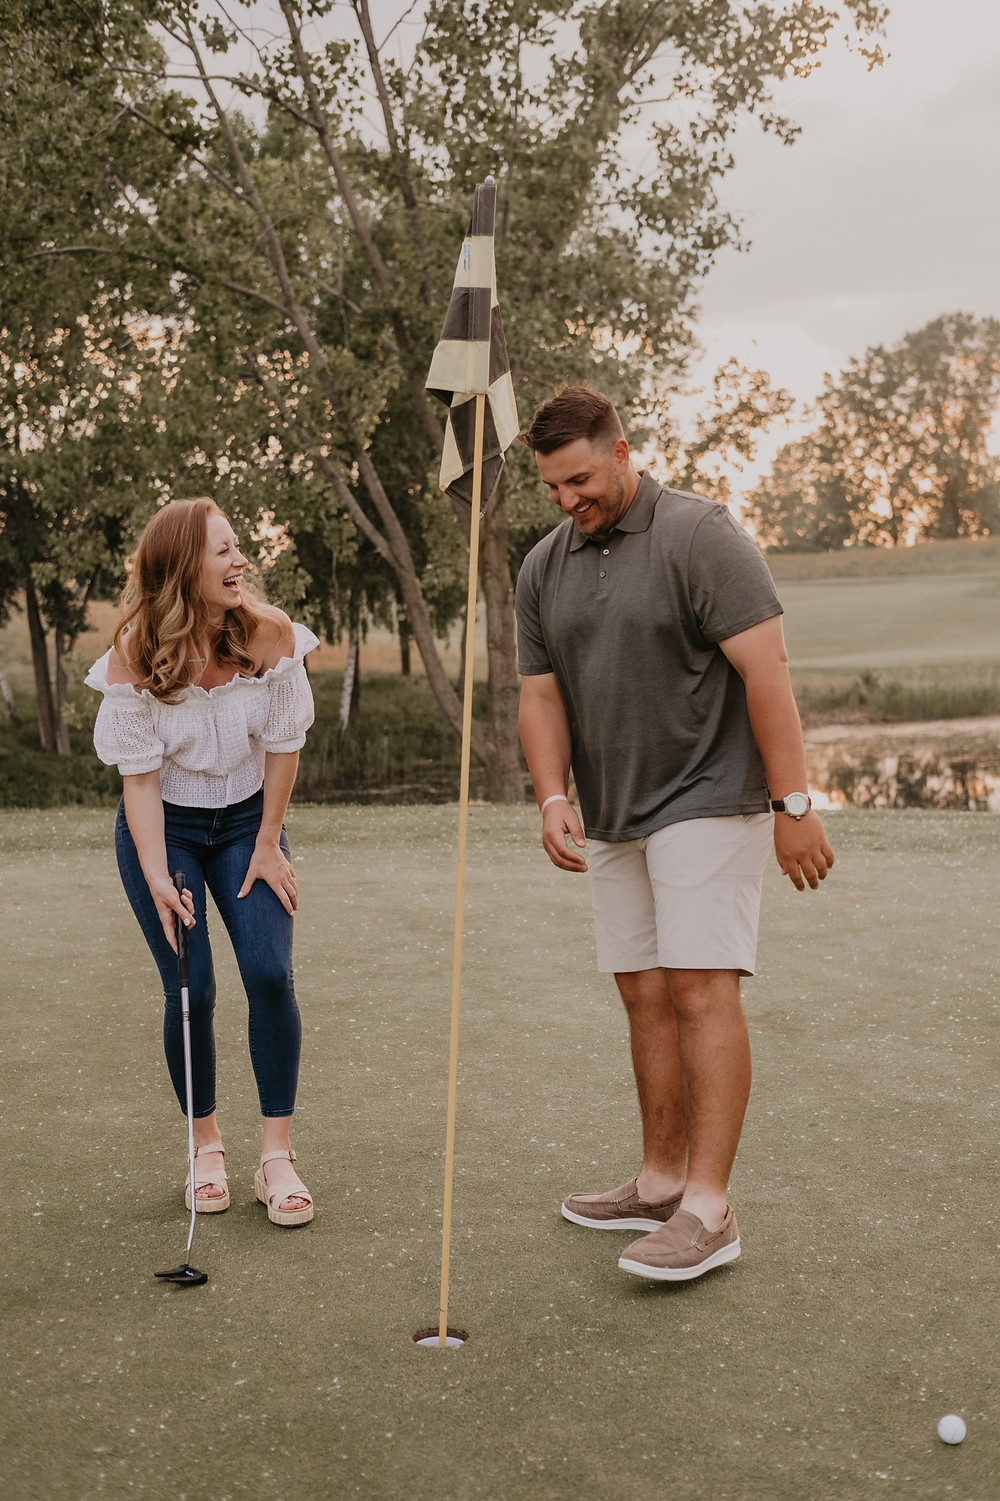 Golf course engagement photos in Metro Detroit. Photographed by Nicole Leanne Photography